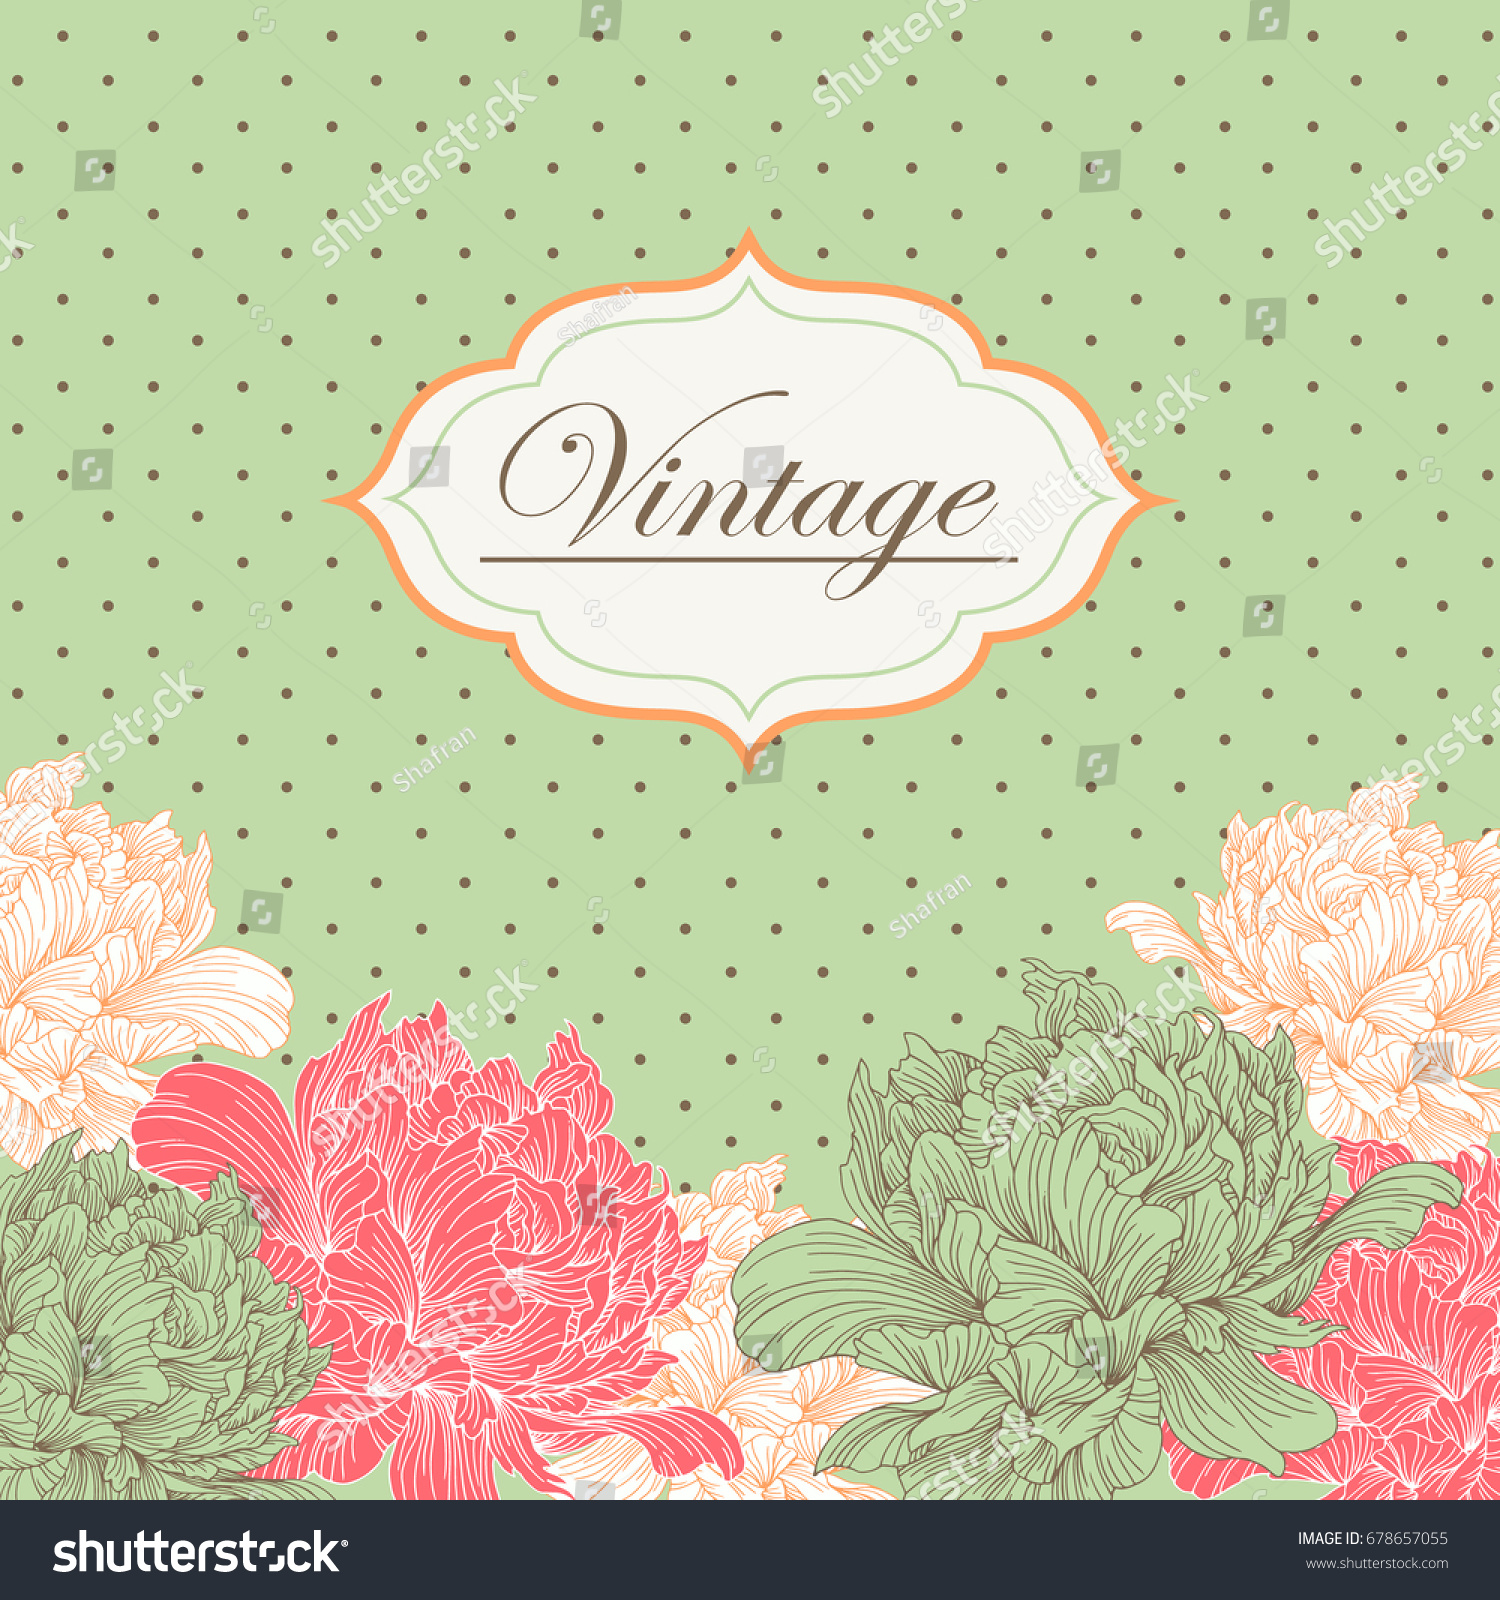 Vintage Card Invitation Abstract Peonies Floral Stock Photo (Photo ...